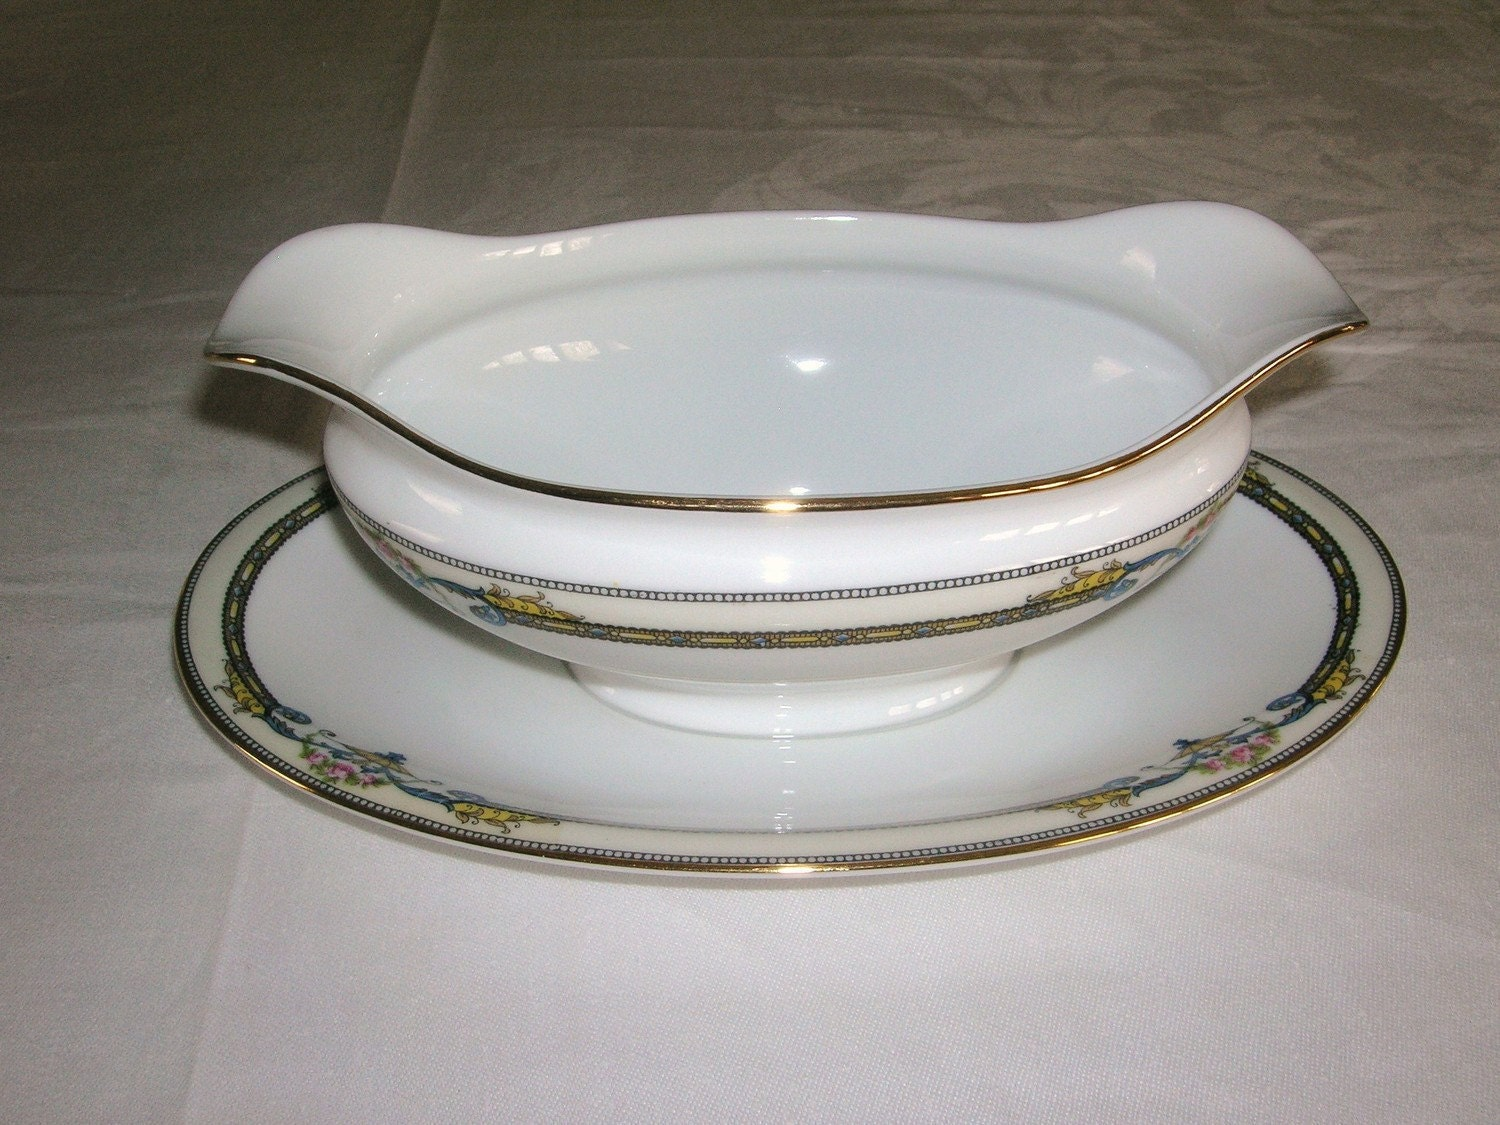 Old China Patterns Amazing Of Old Noritake China Patterns Pictures